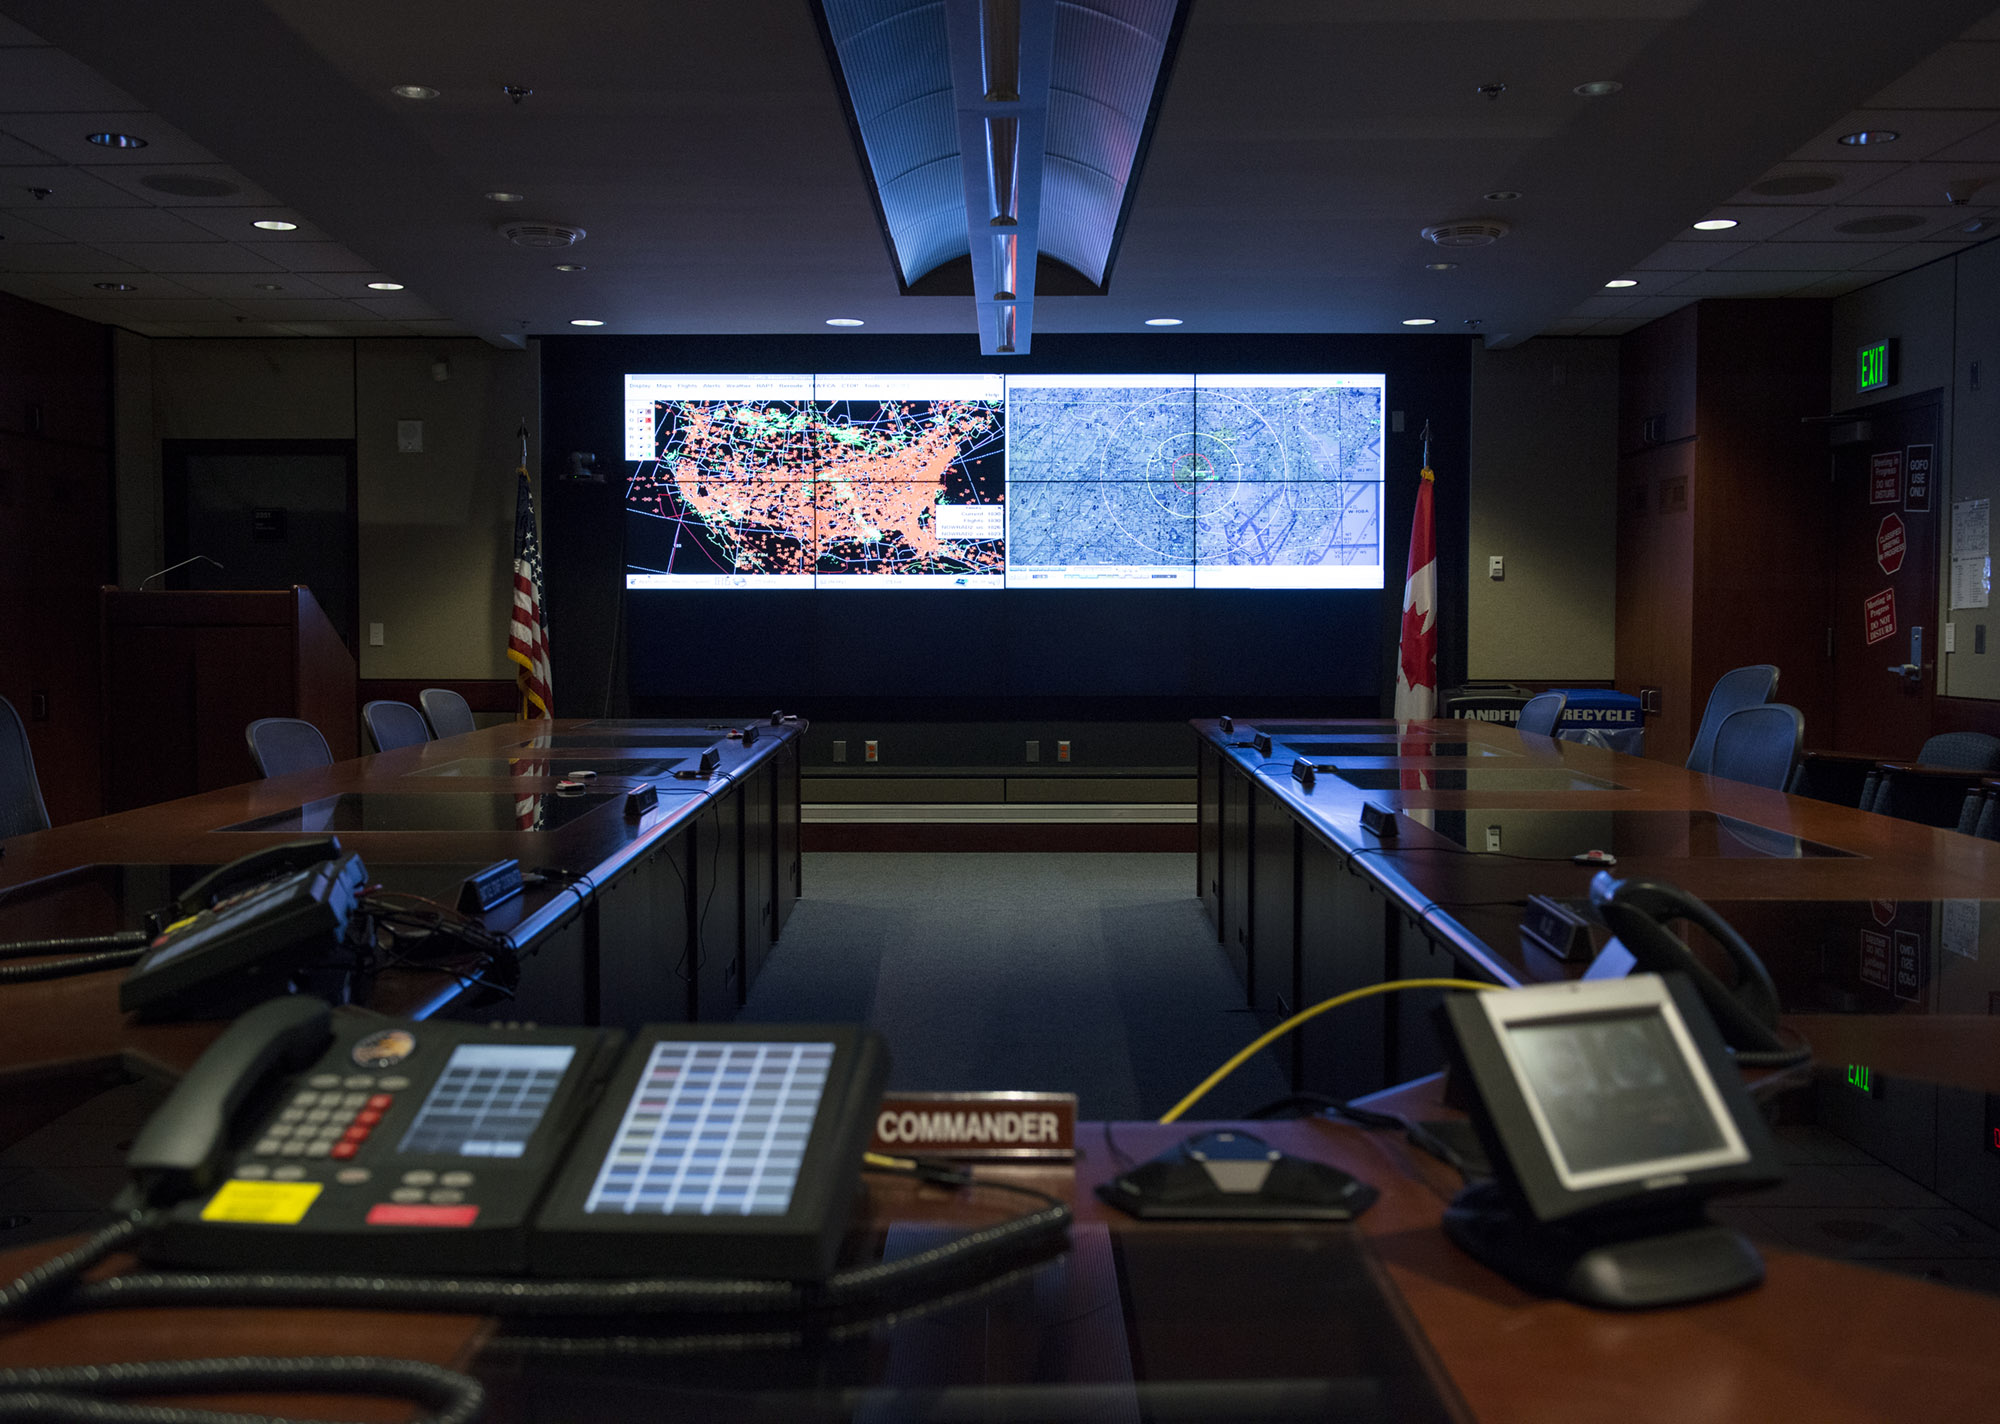 A conference room lit up by two large screens. The one on the left shows air traffic in the continental United States, while the one on the right shows a detail view of terrain. In the foreground is a desk marked